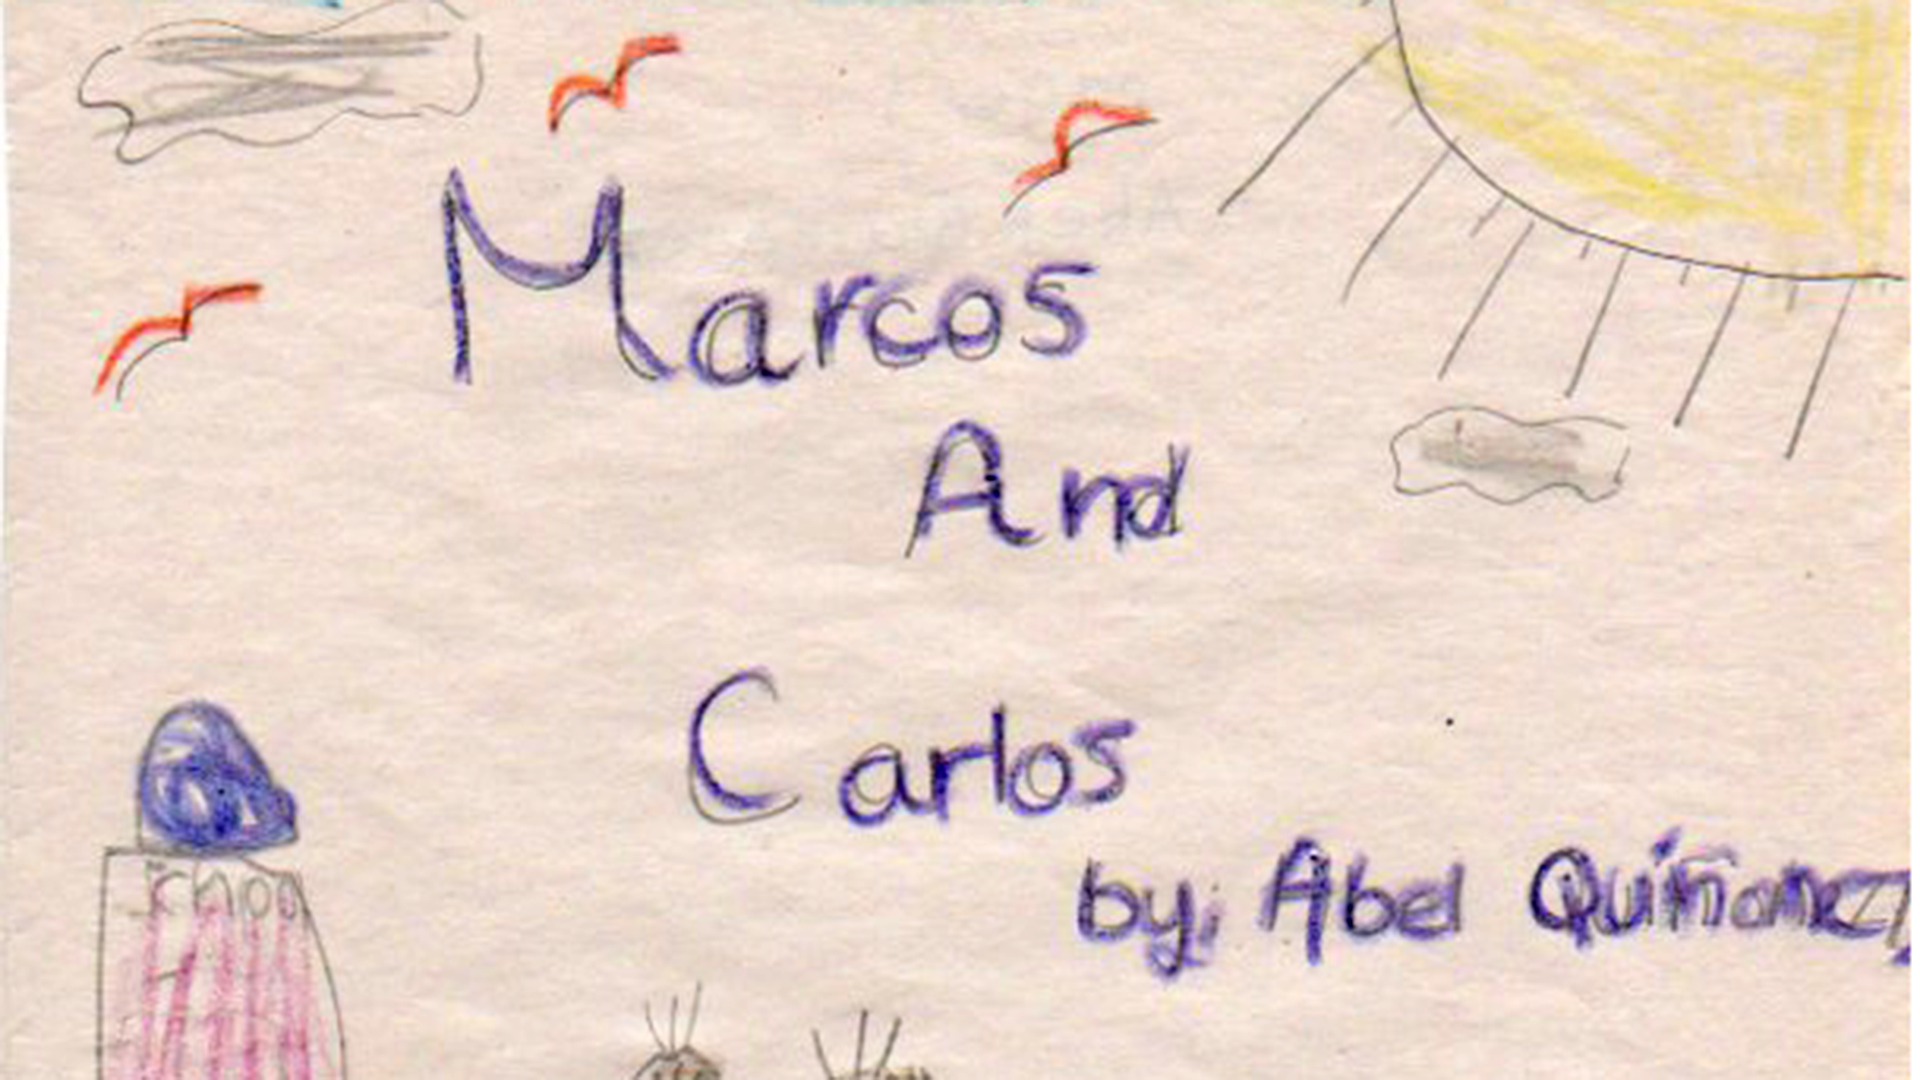 Marcos and Carlos